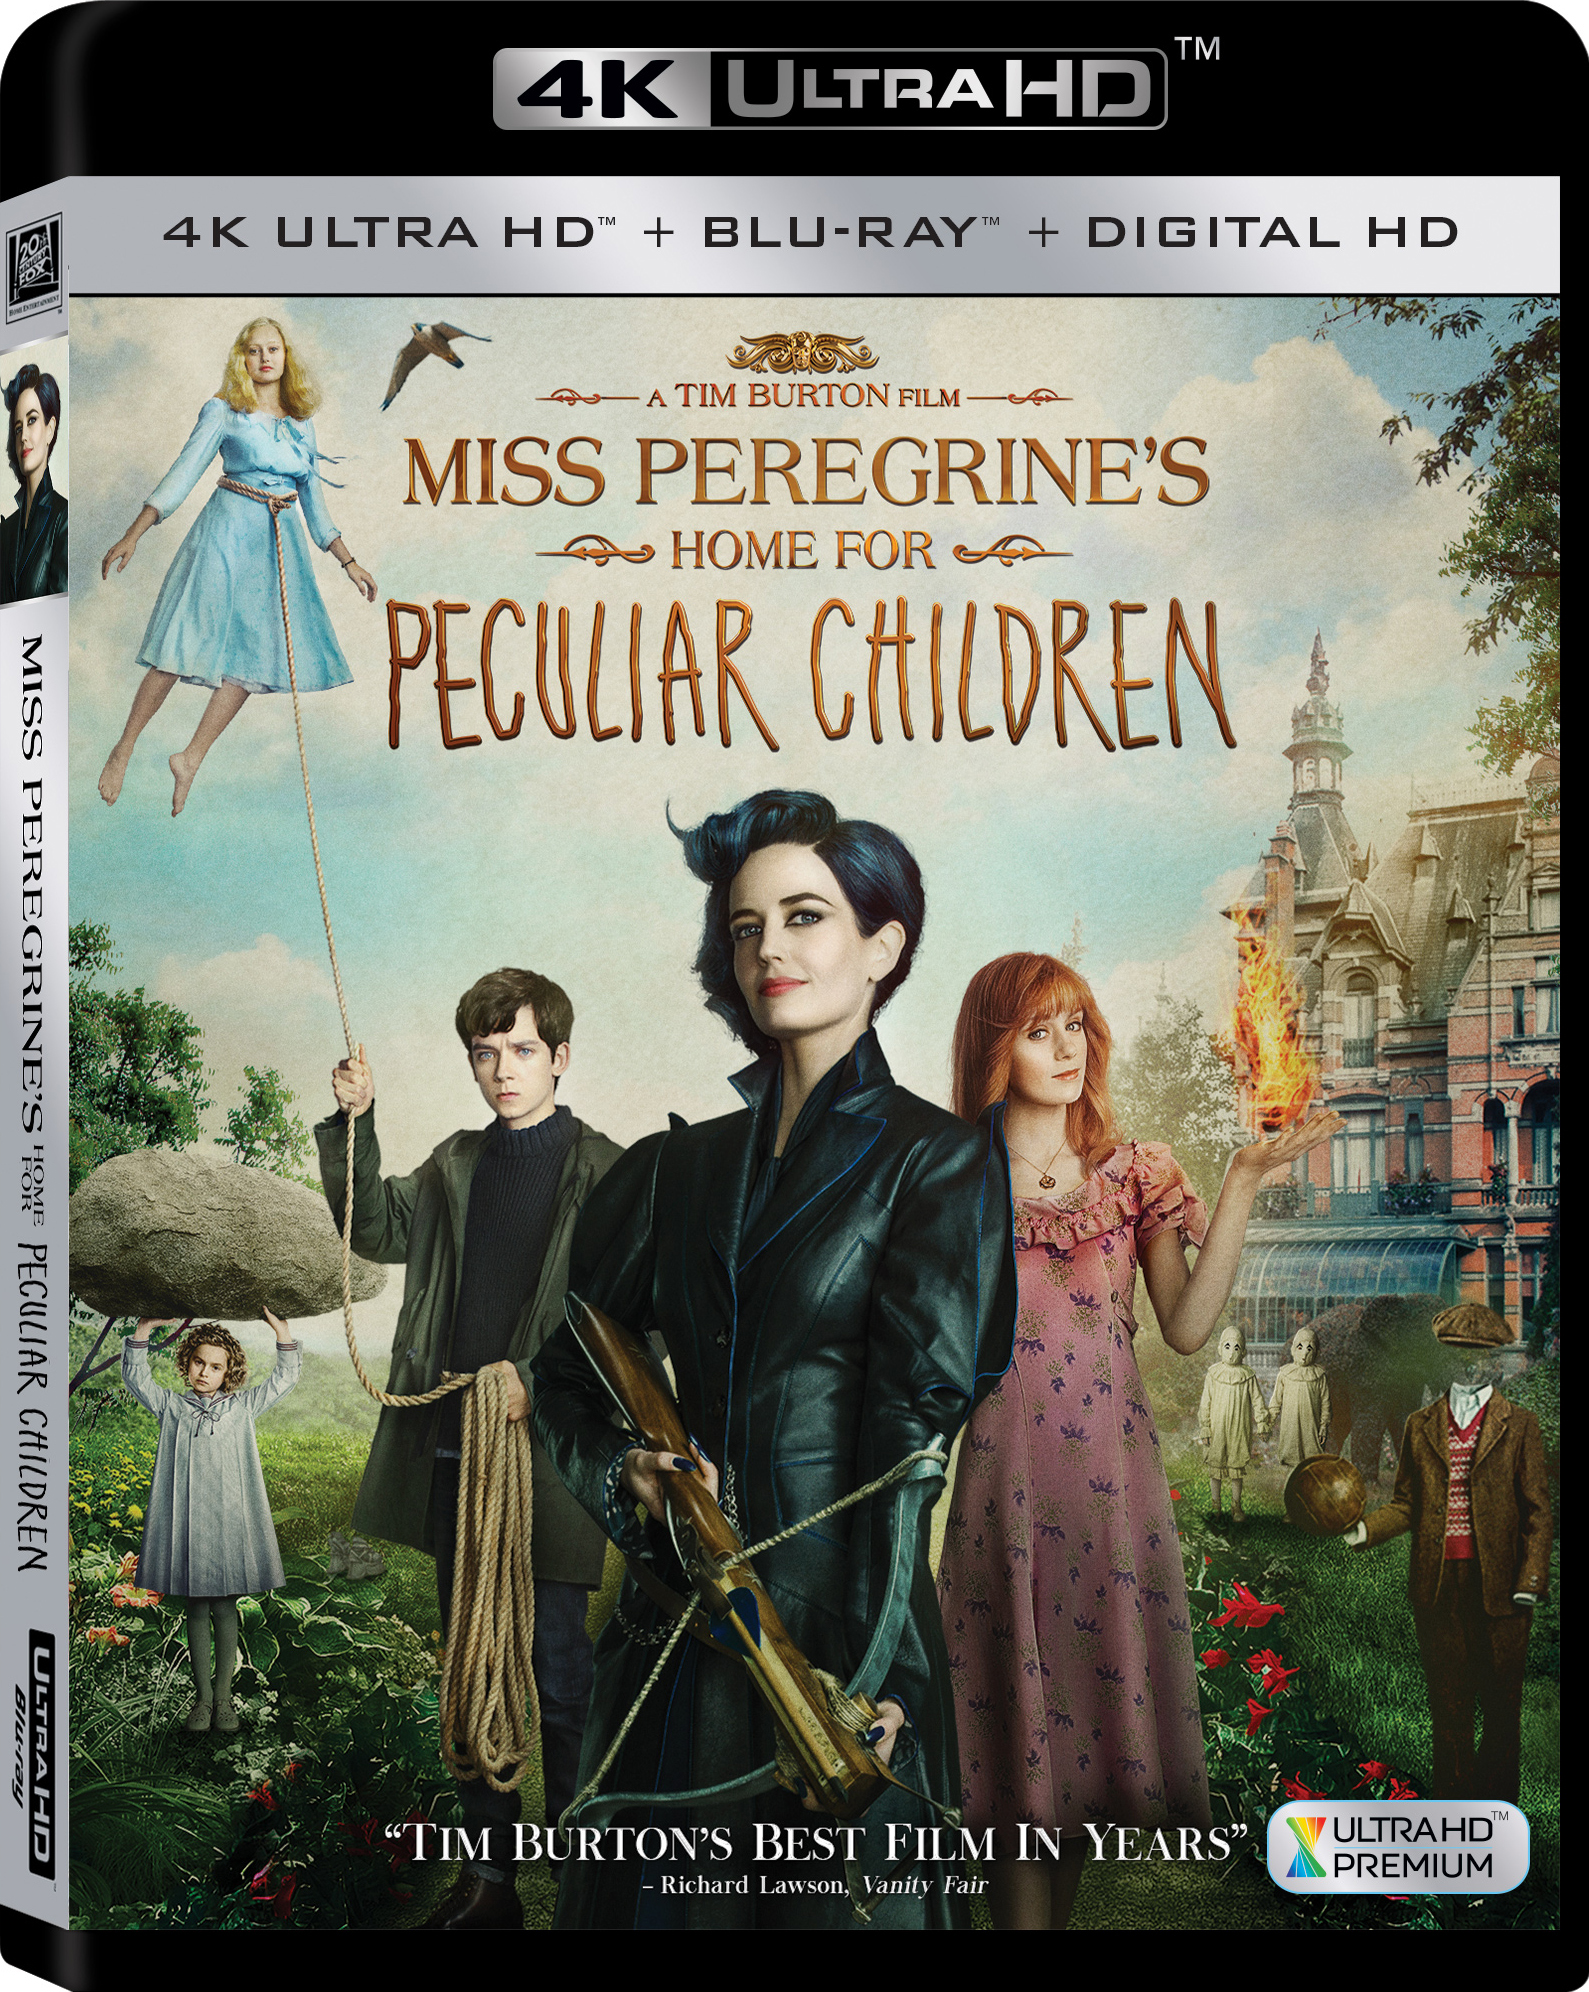 Miss Peregrines Home for Peculiar Children 4K (2016) Ultra HD Blu-ray